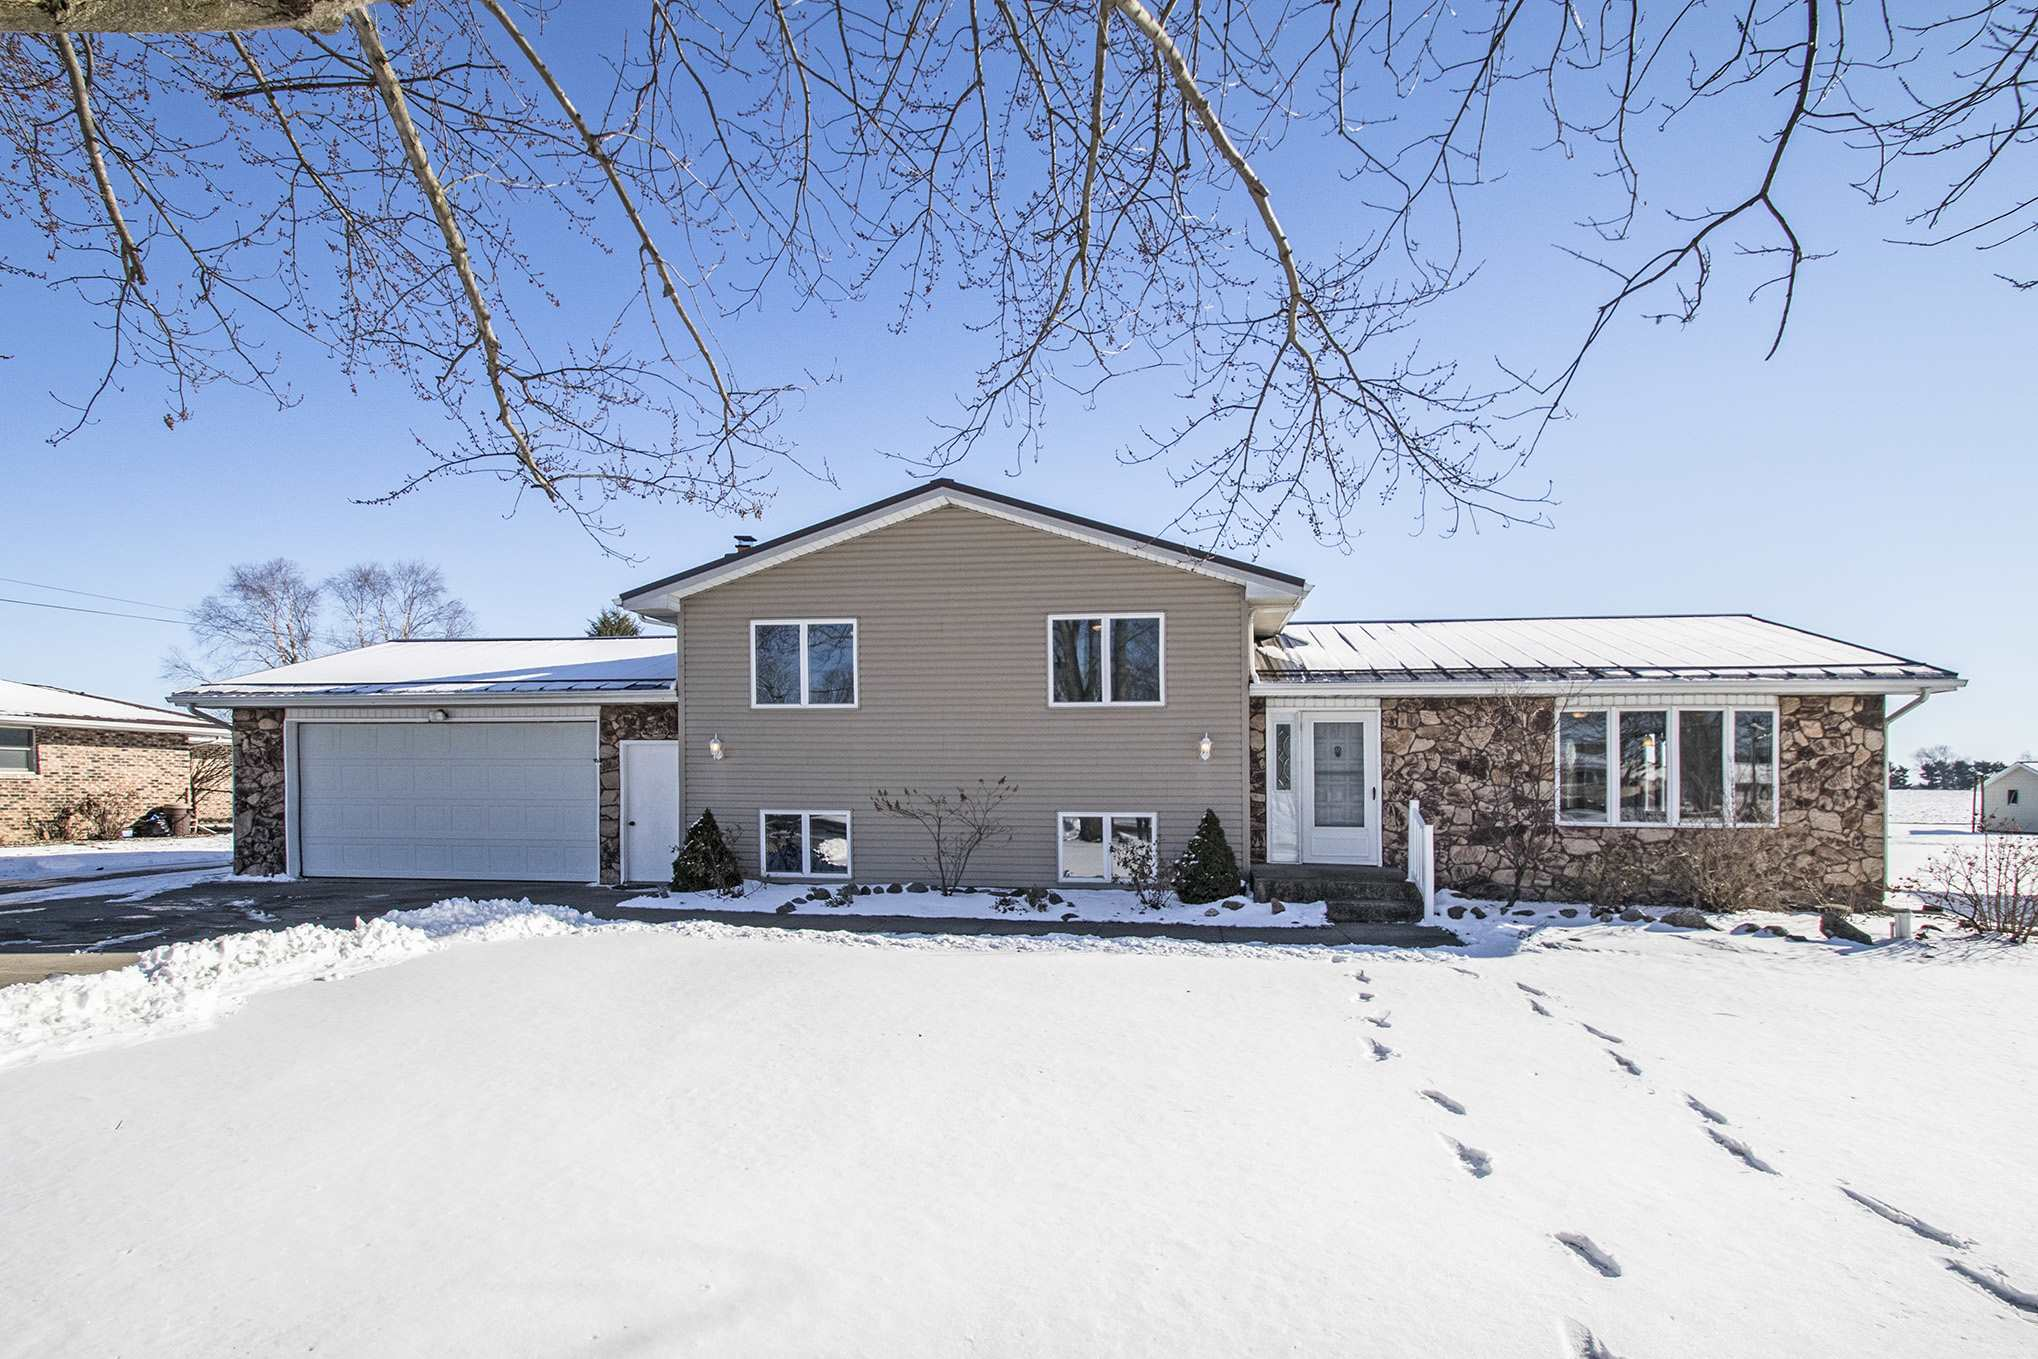 72172 County Road 9 Road, Nappanee, IN 46550